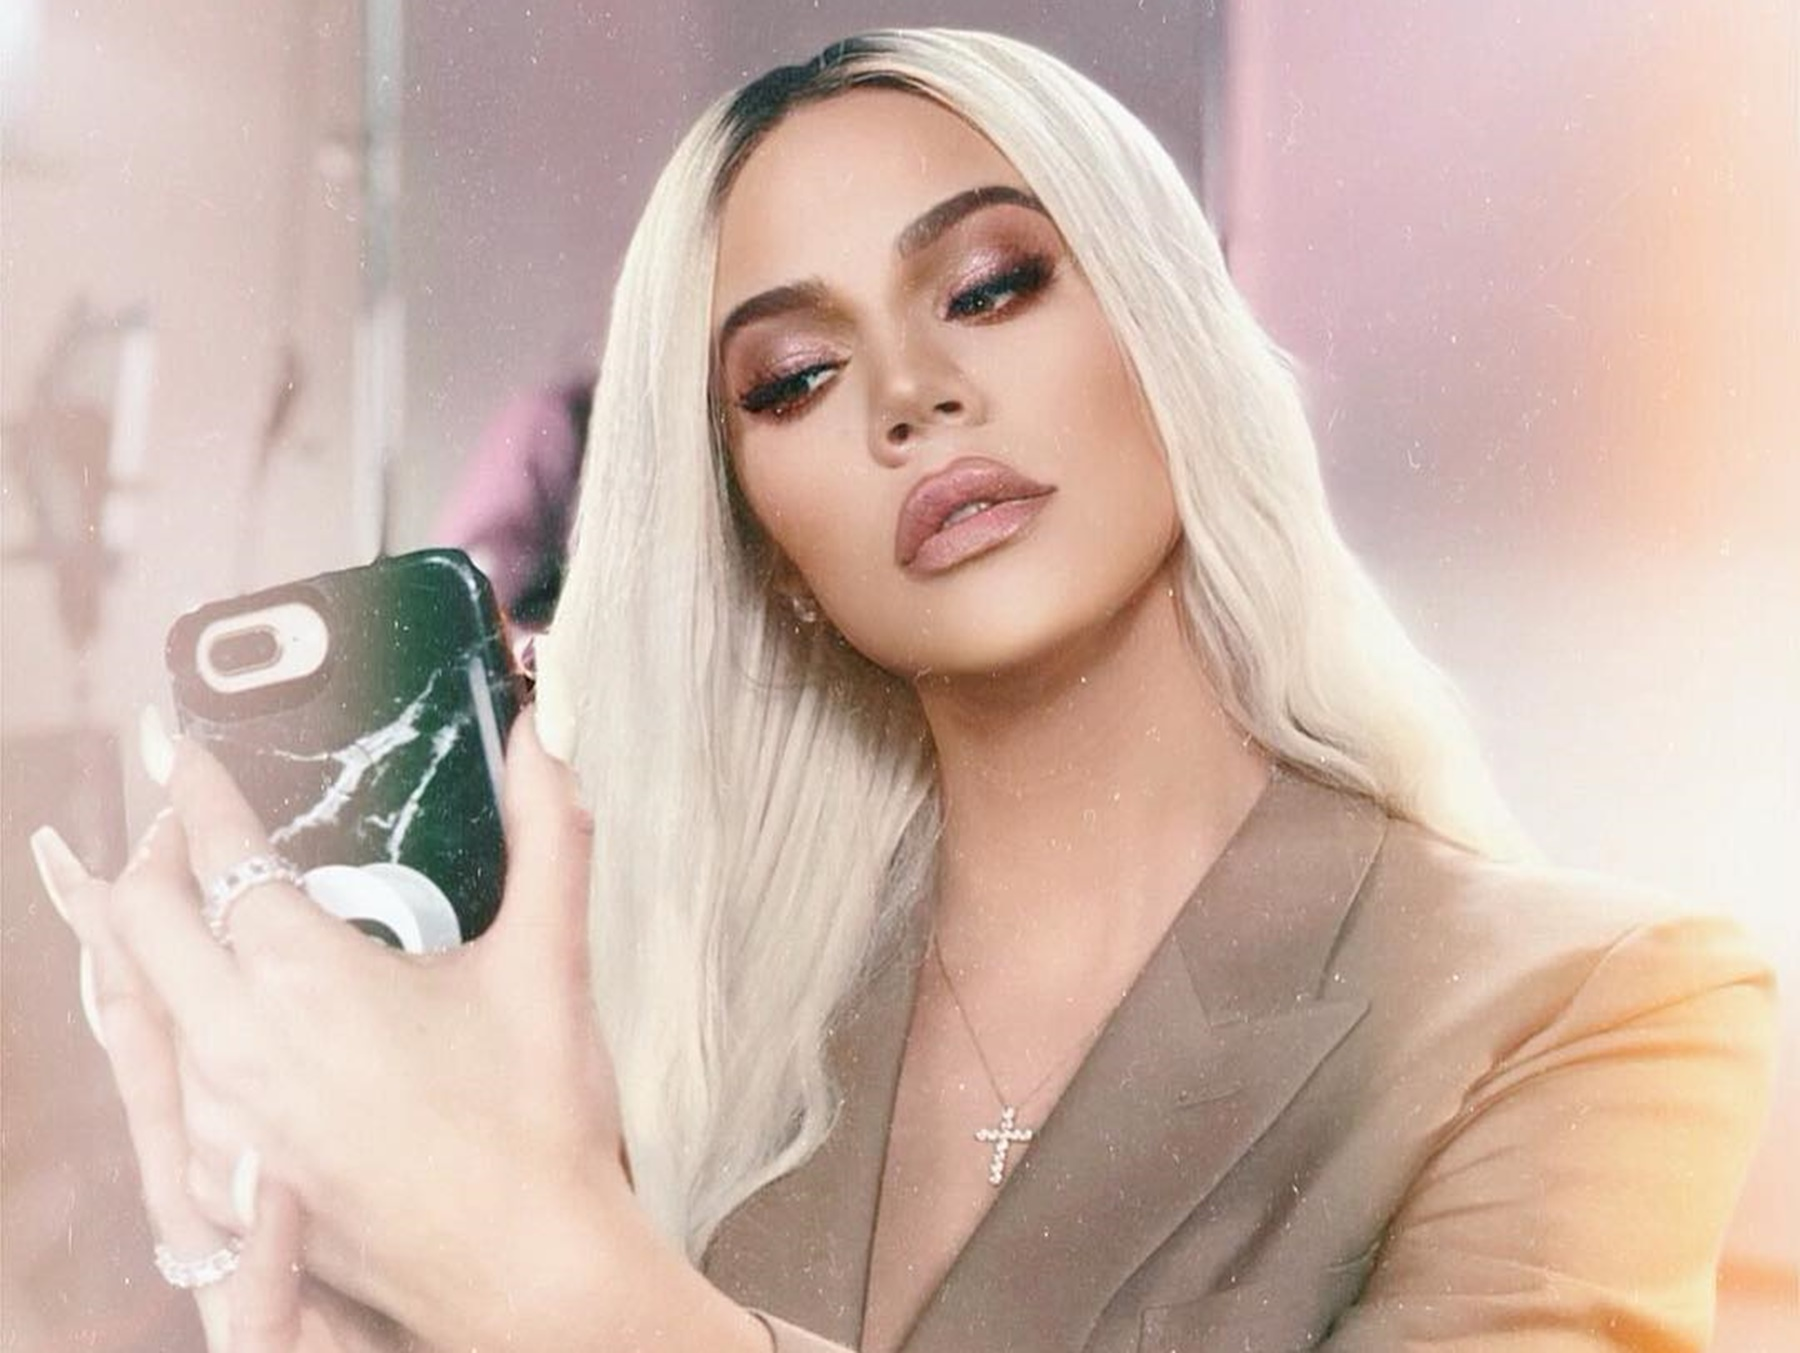 """tristan-thompson-is-moving-on-but-khloe-kardashian-is-still-struggling-after-the-jordyn-woods-cheating-scandal-posting-pictures-of-her-daughter-has-become-an-escape"""